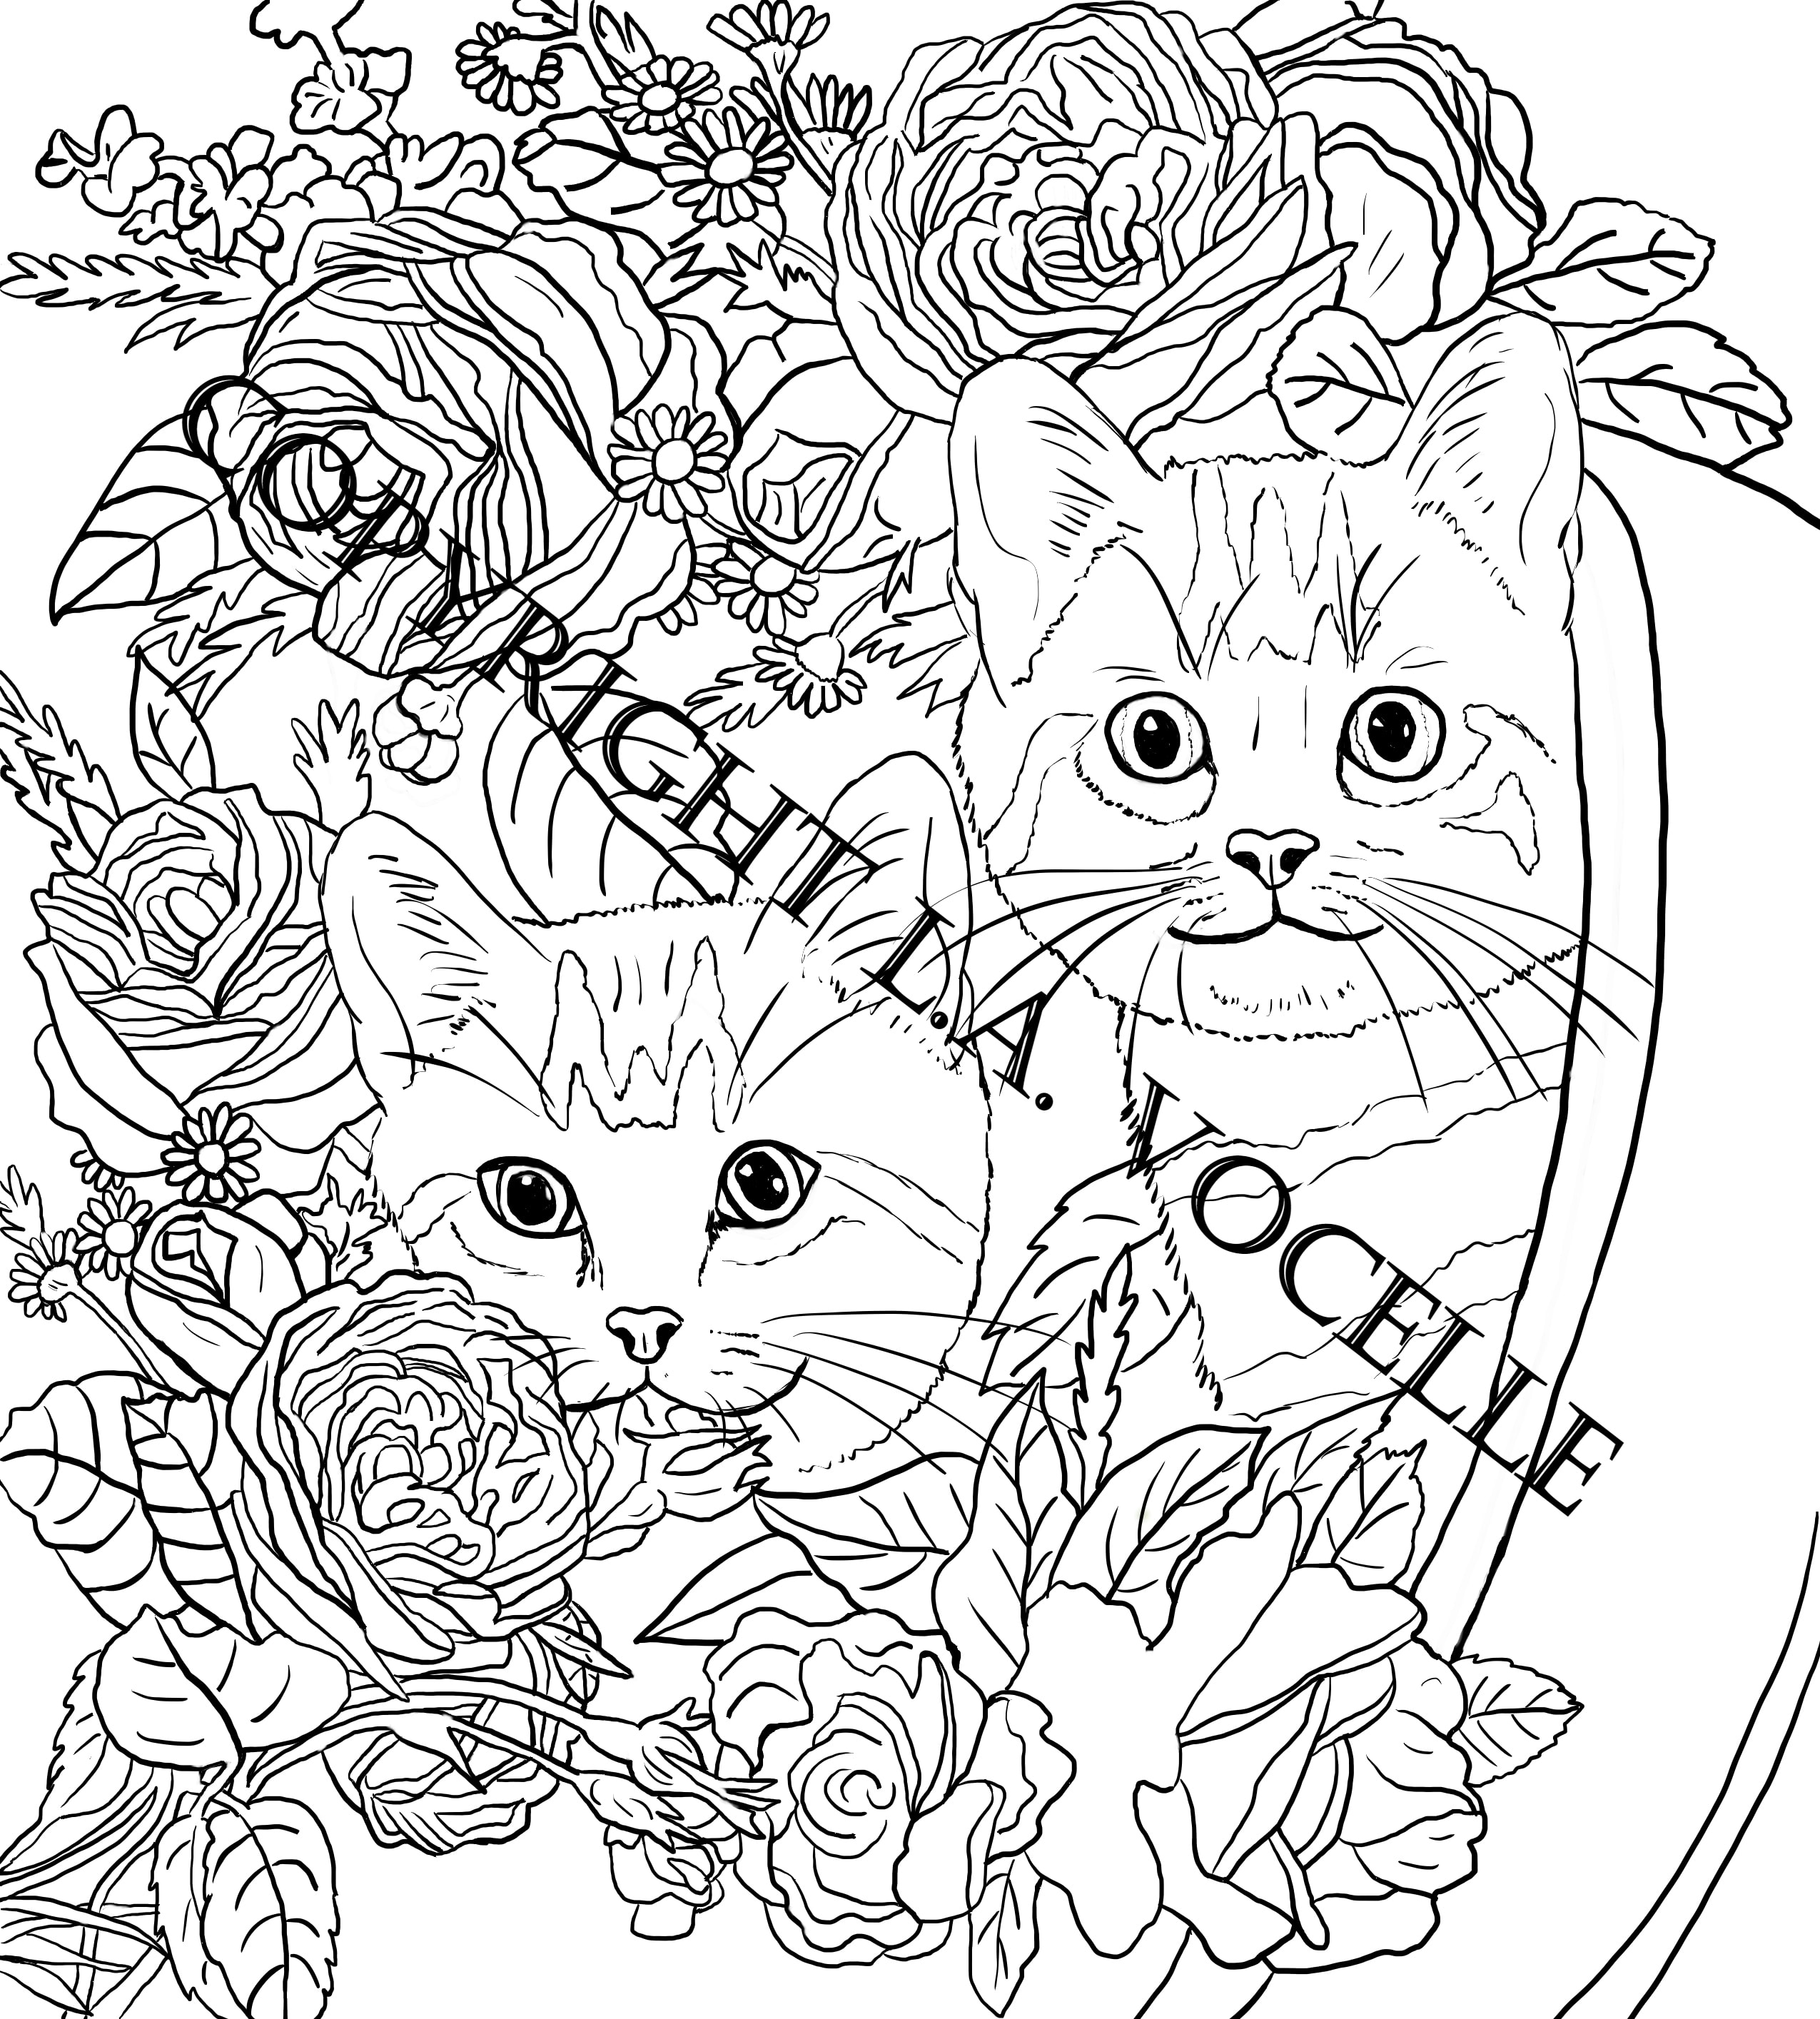 Buy NOW Cats and Flowers Coloring Book Page,Two Kittens in a Pot ...